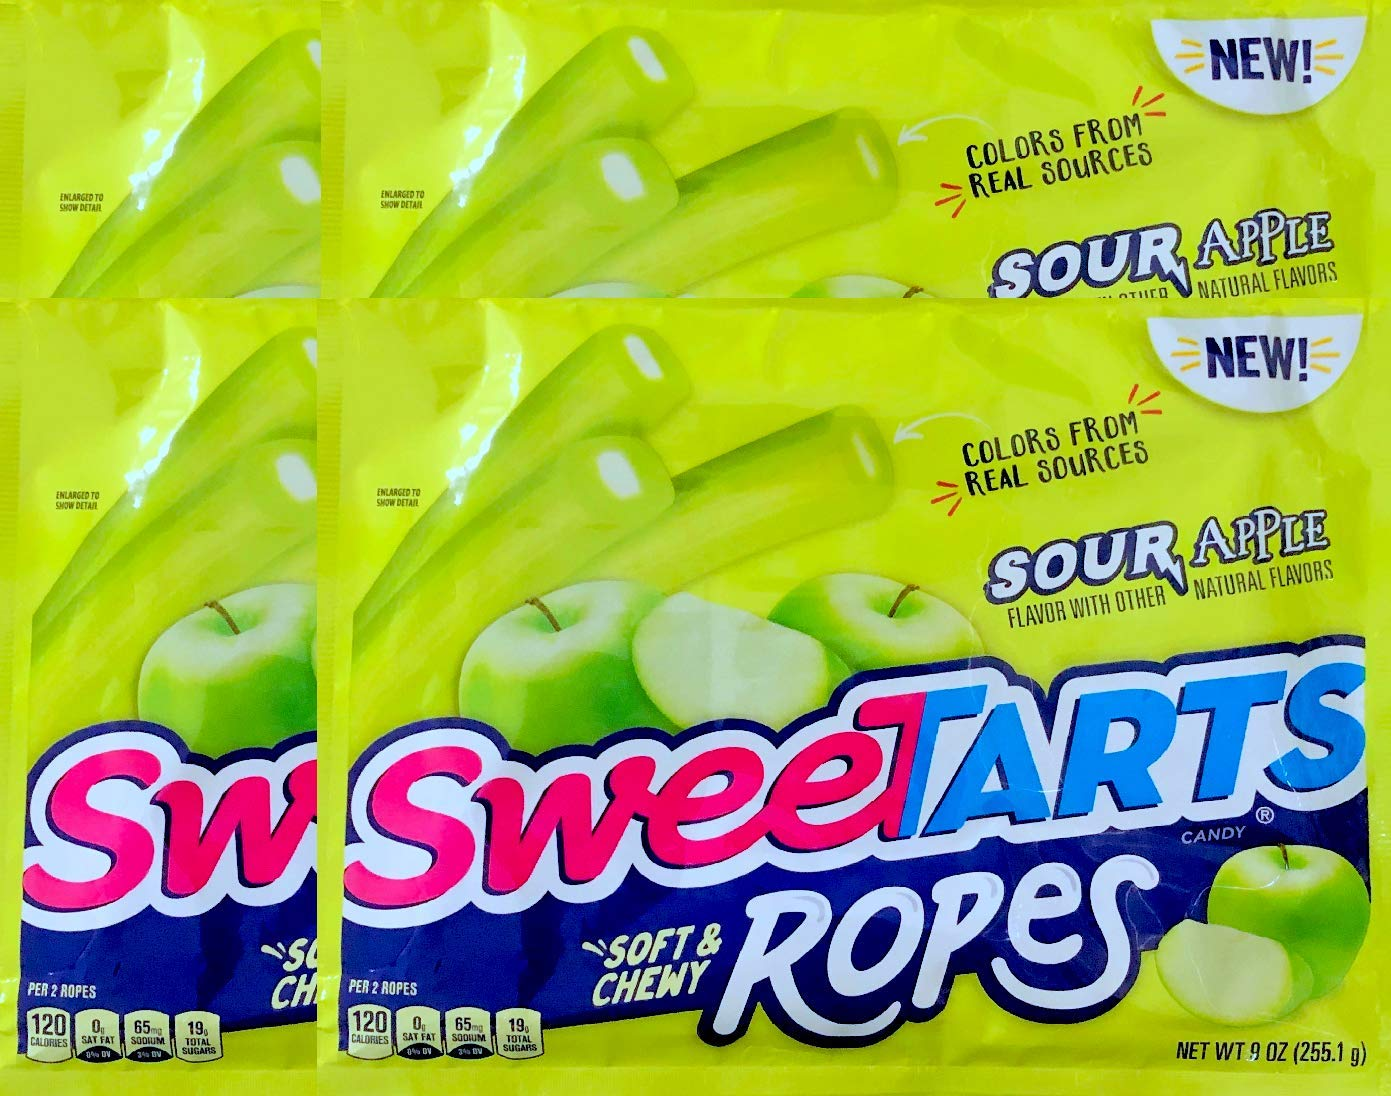 NEW Sweetarts Sour Apple Soft & Chewy Ropes Net Wt 9oz (4) by SweetartsRopes